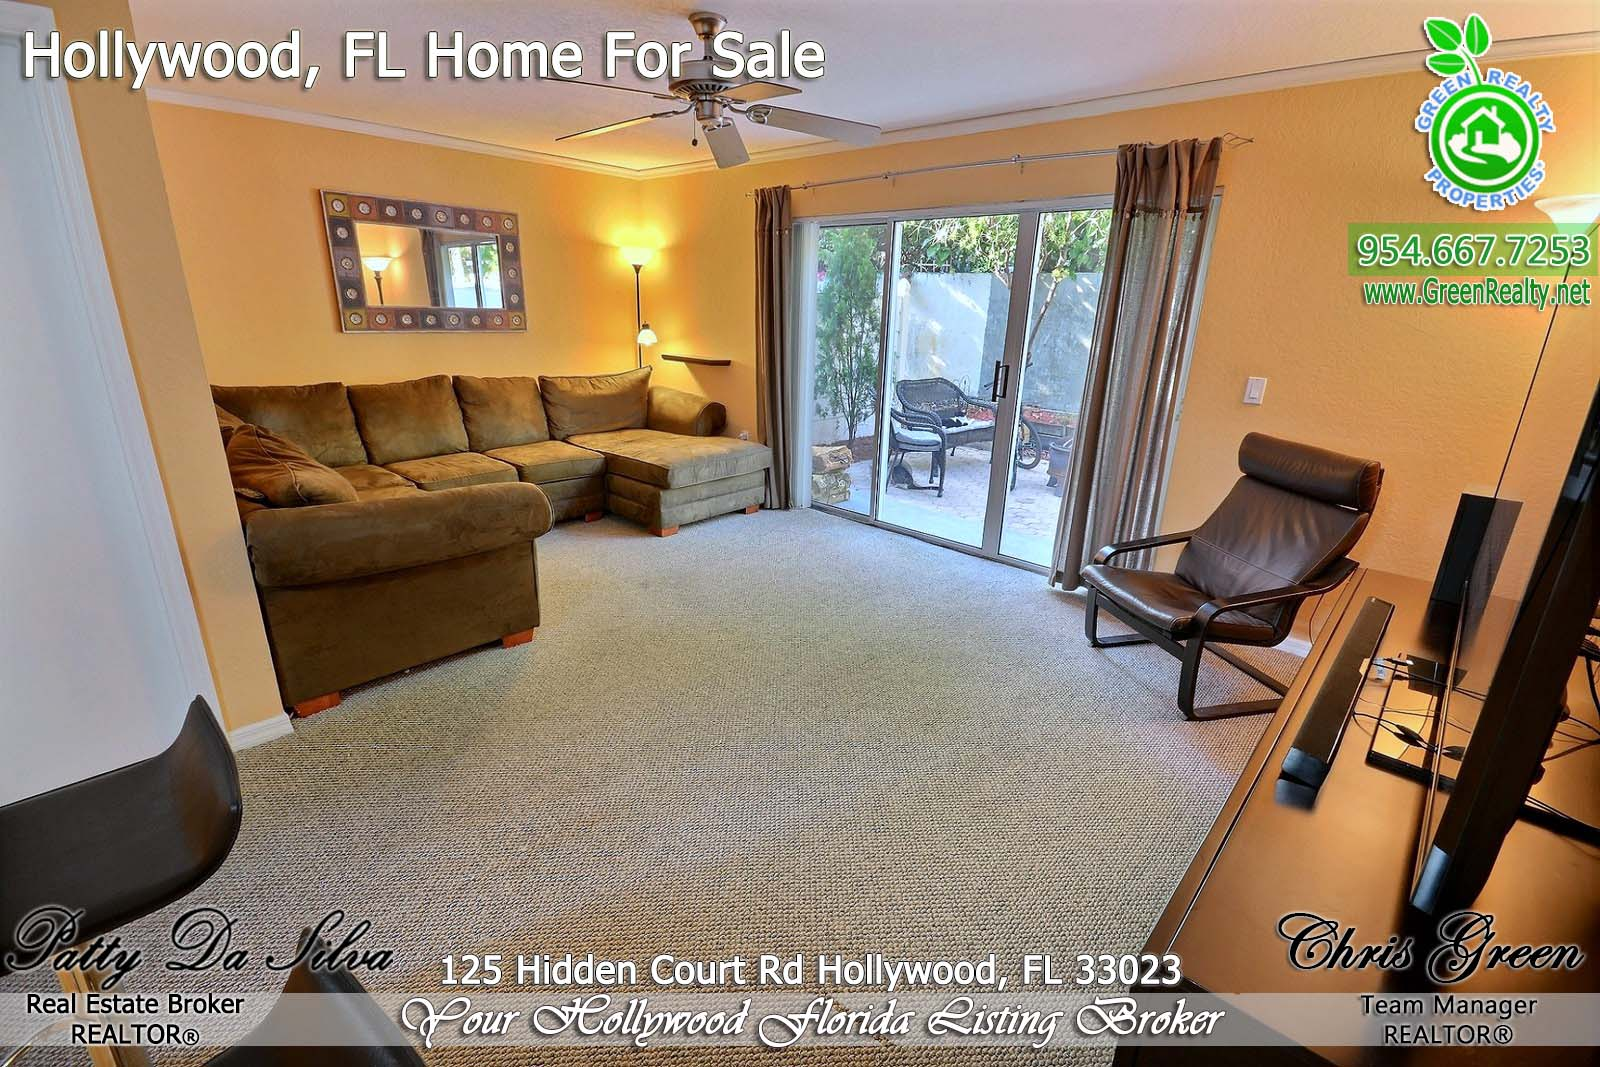 8 Hollywood Florida Homes (2)